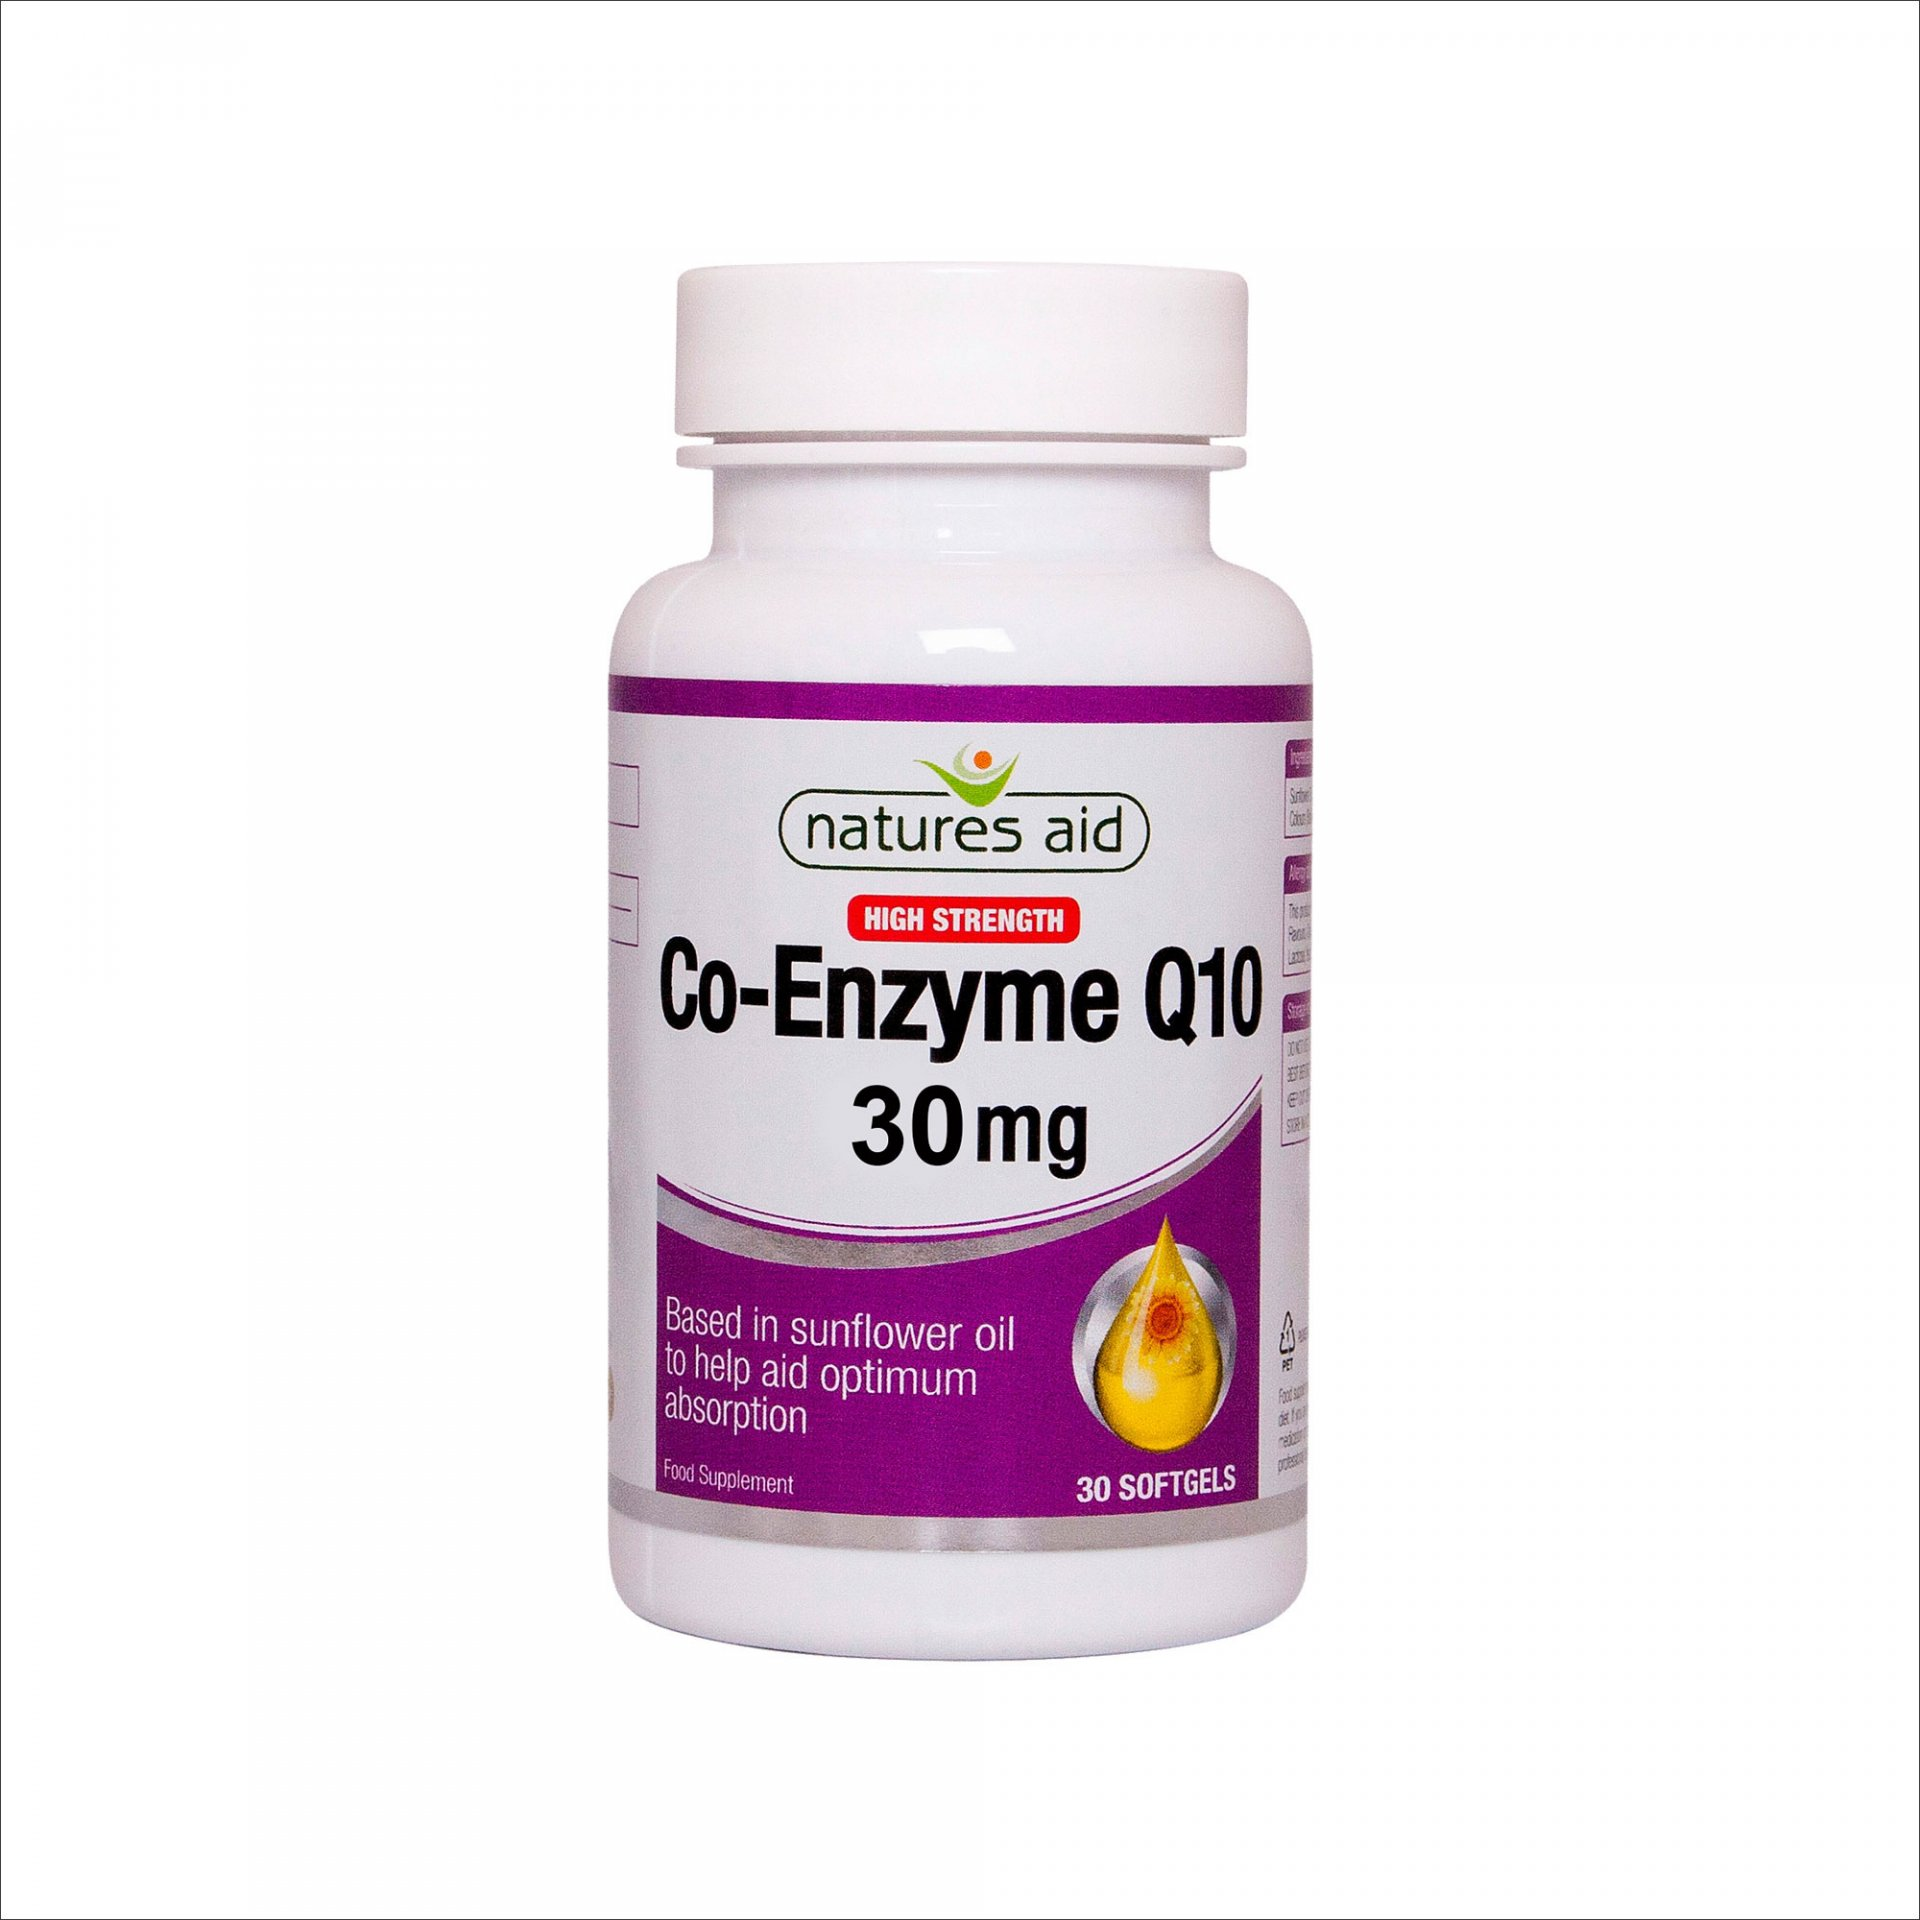 CO-ENZYME Q10 30 mg softgel